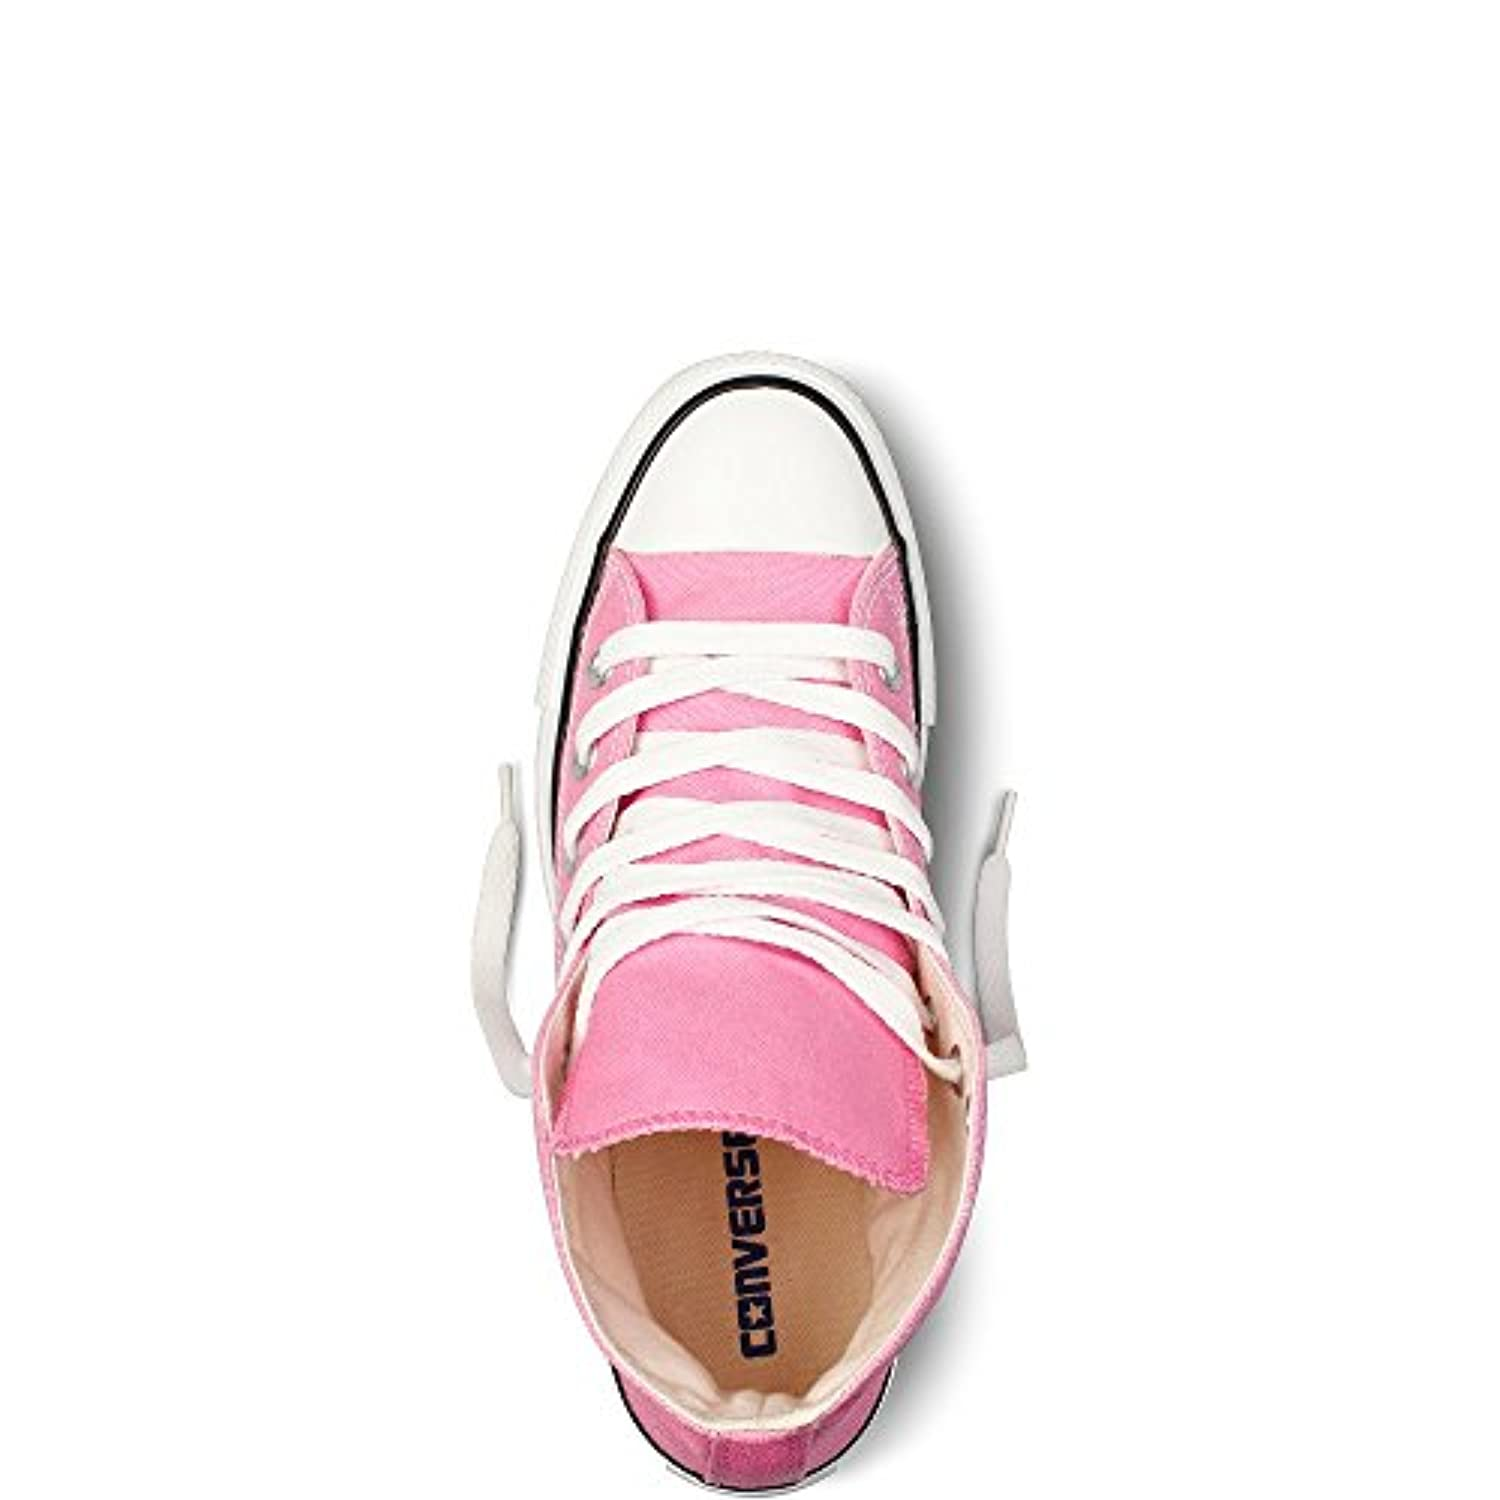 Converse All Star Hi Trainers Pink 6 Child UK